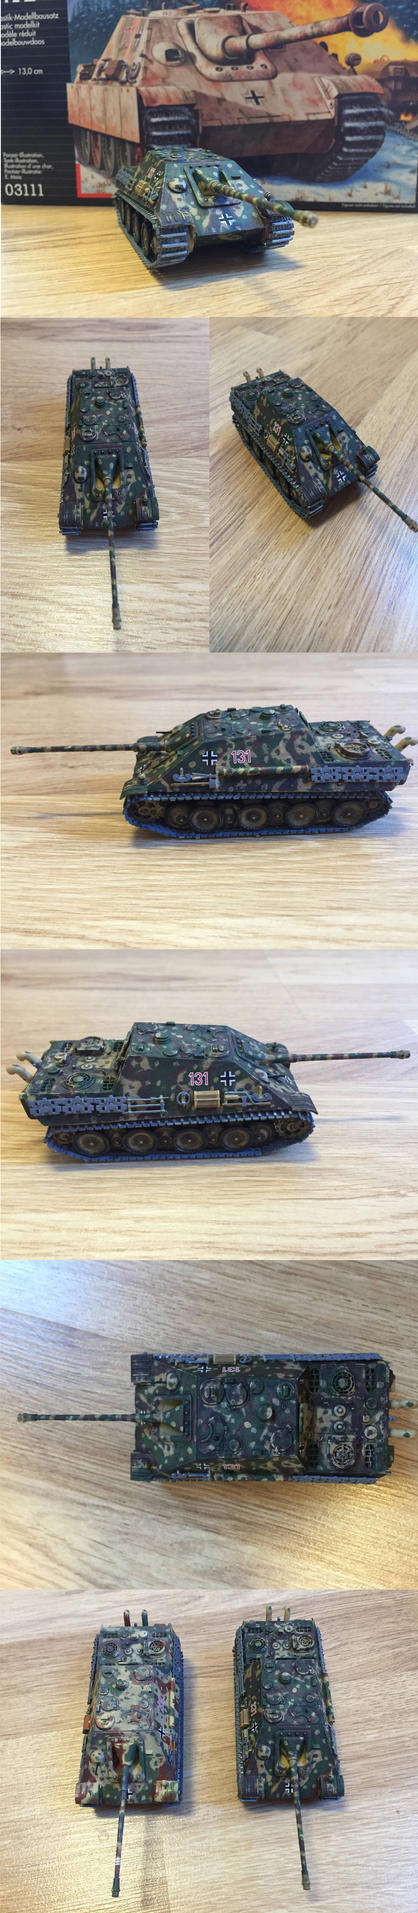 Jagdpanther Late version by warrior1944